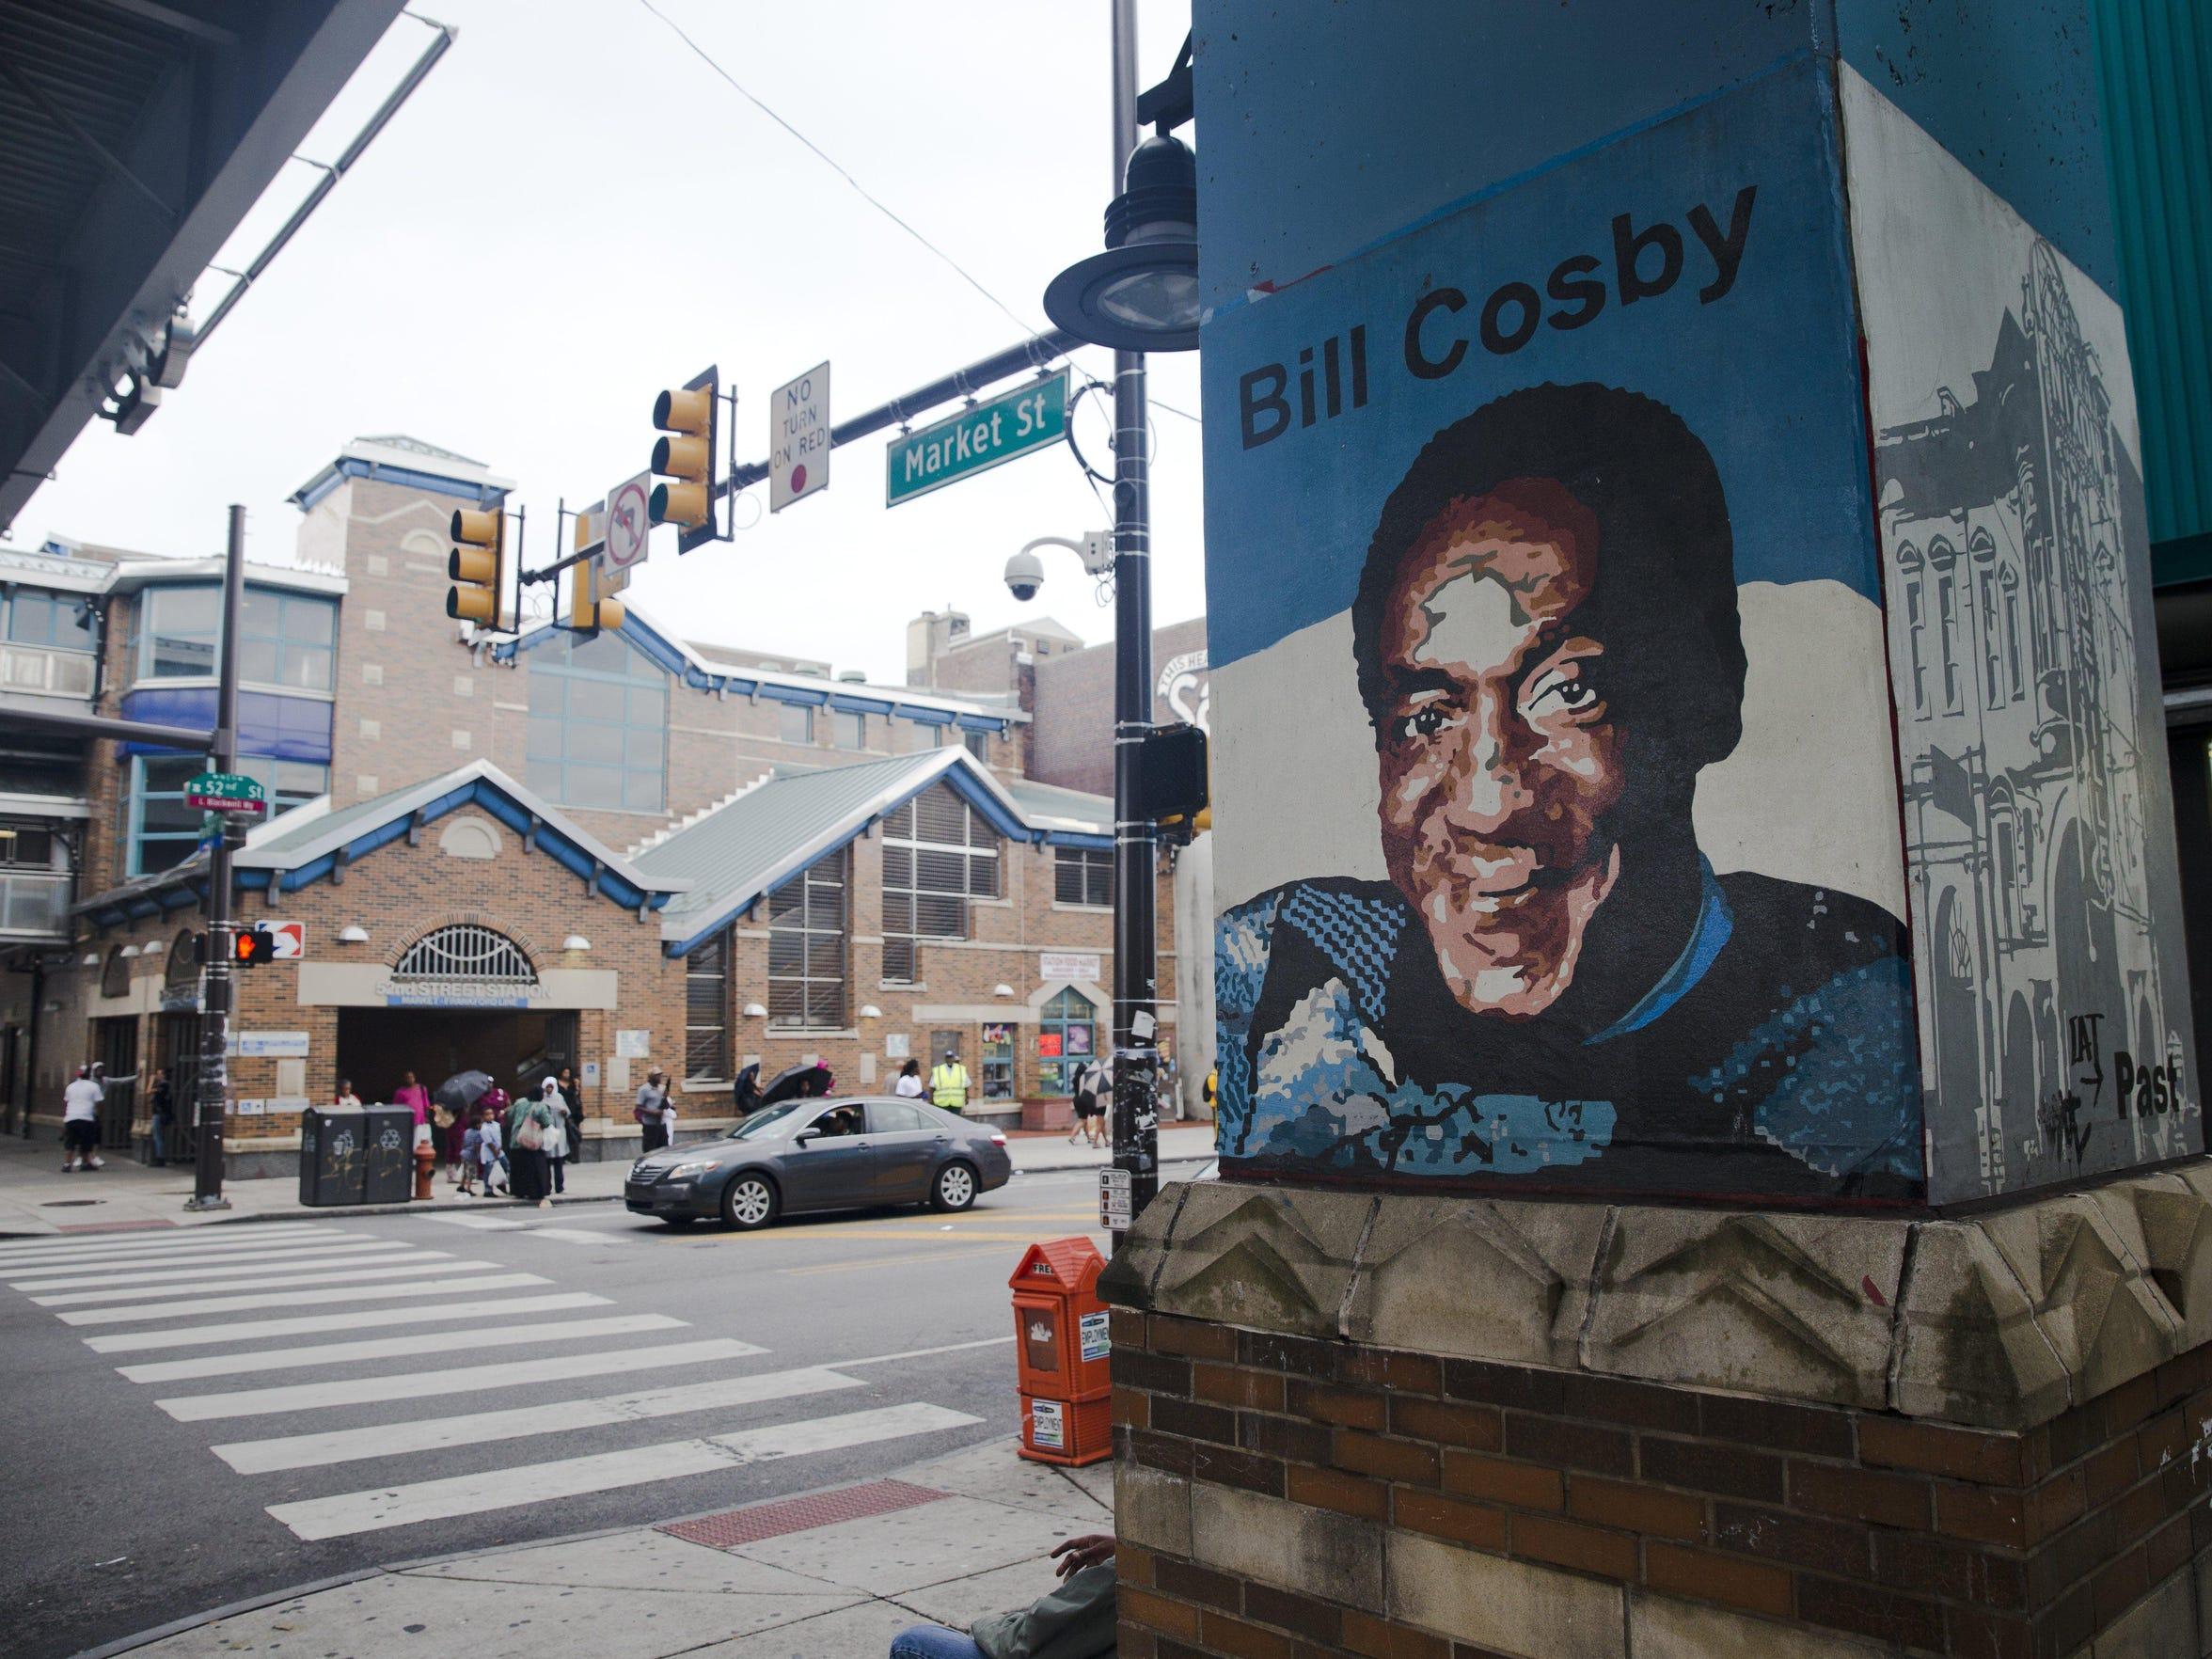 Shown is a mural depicting entertainer Bill Cosbyon